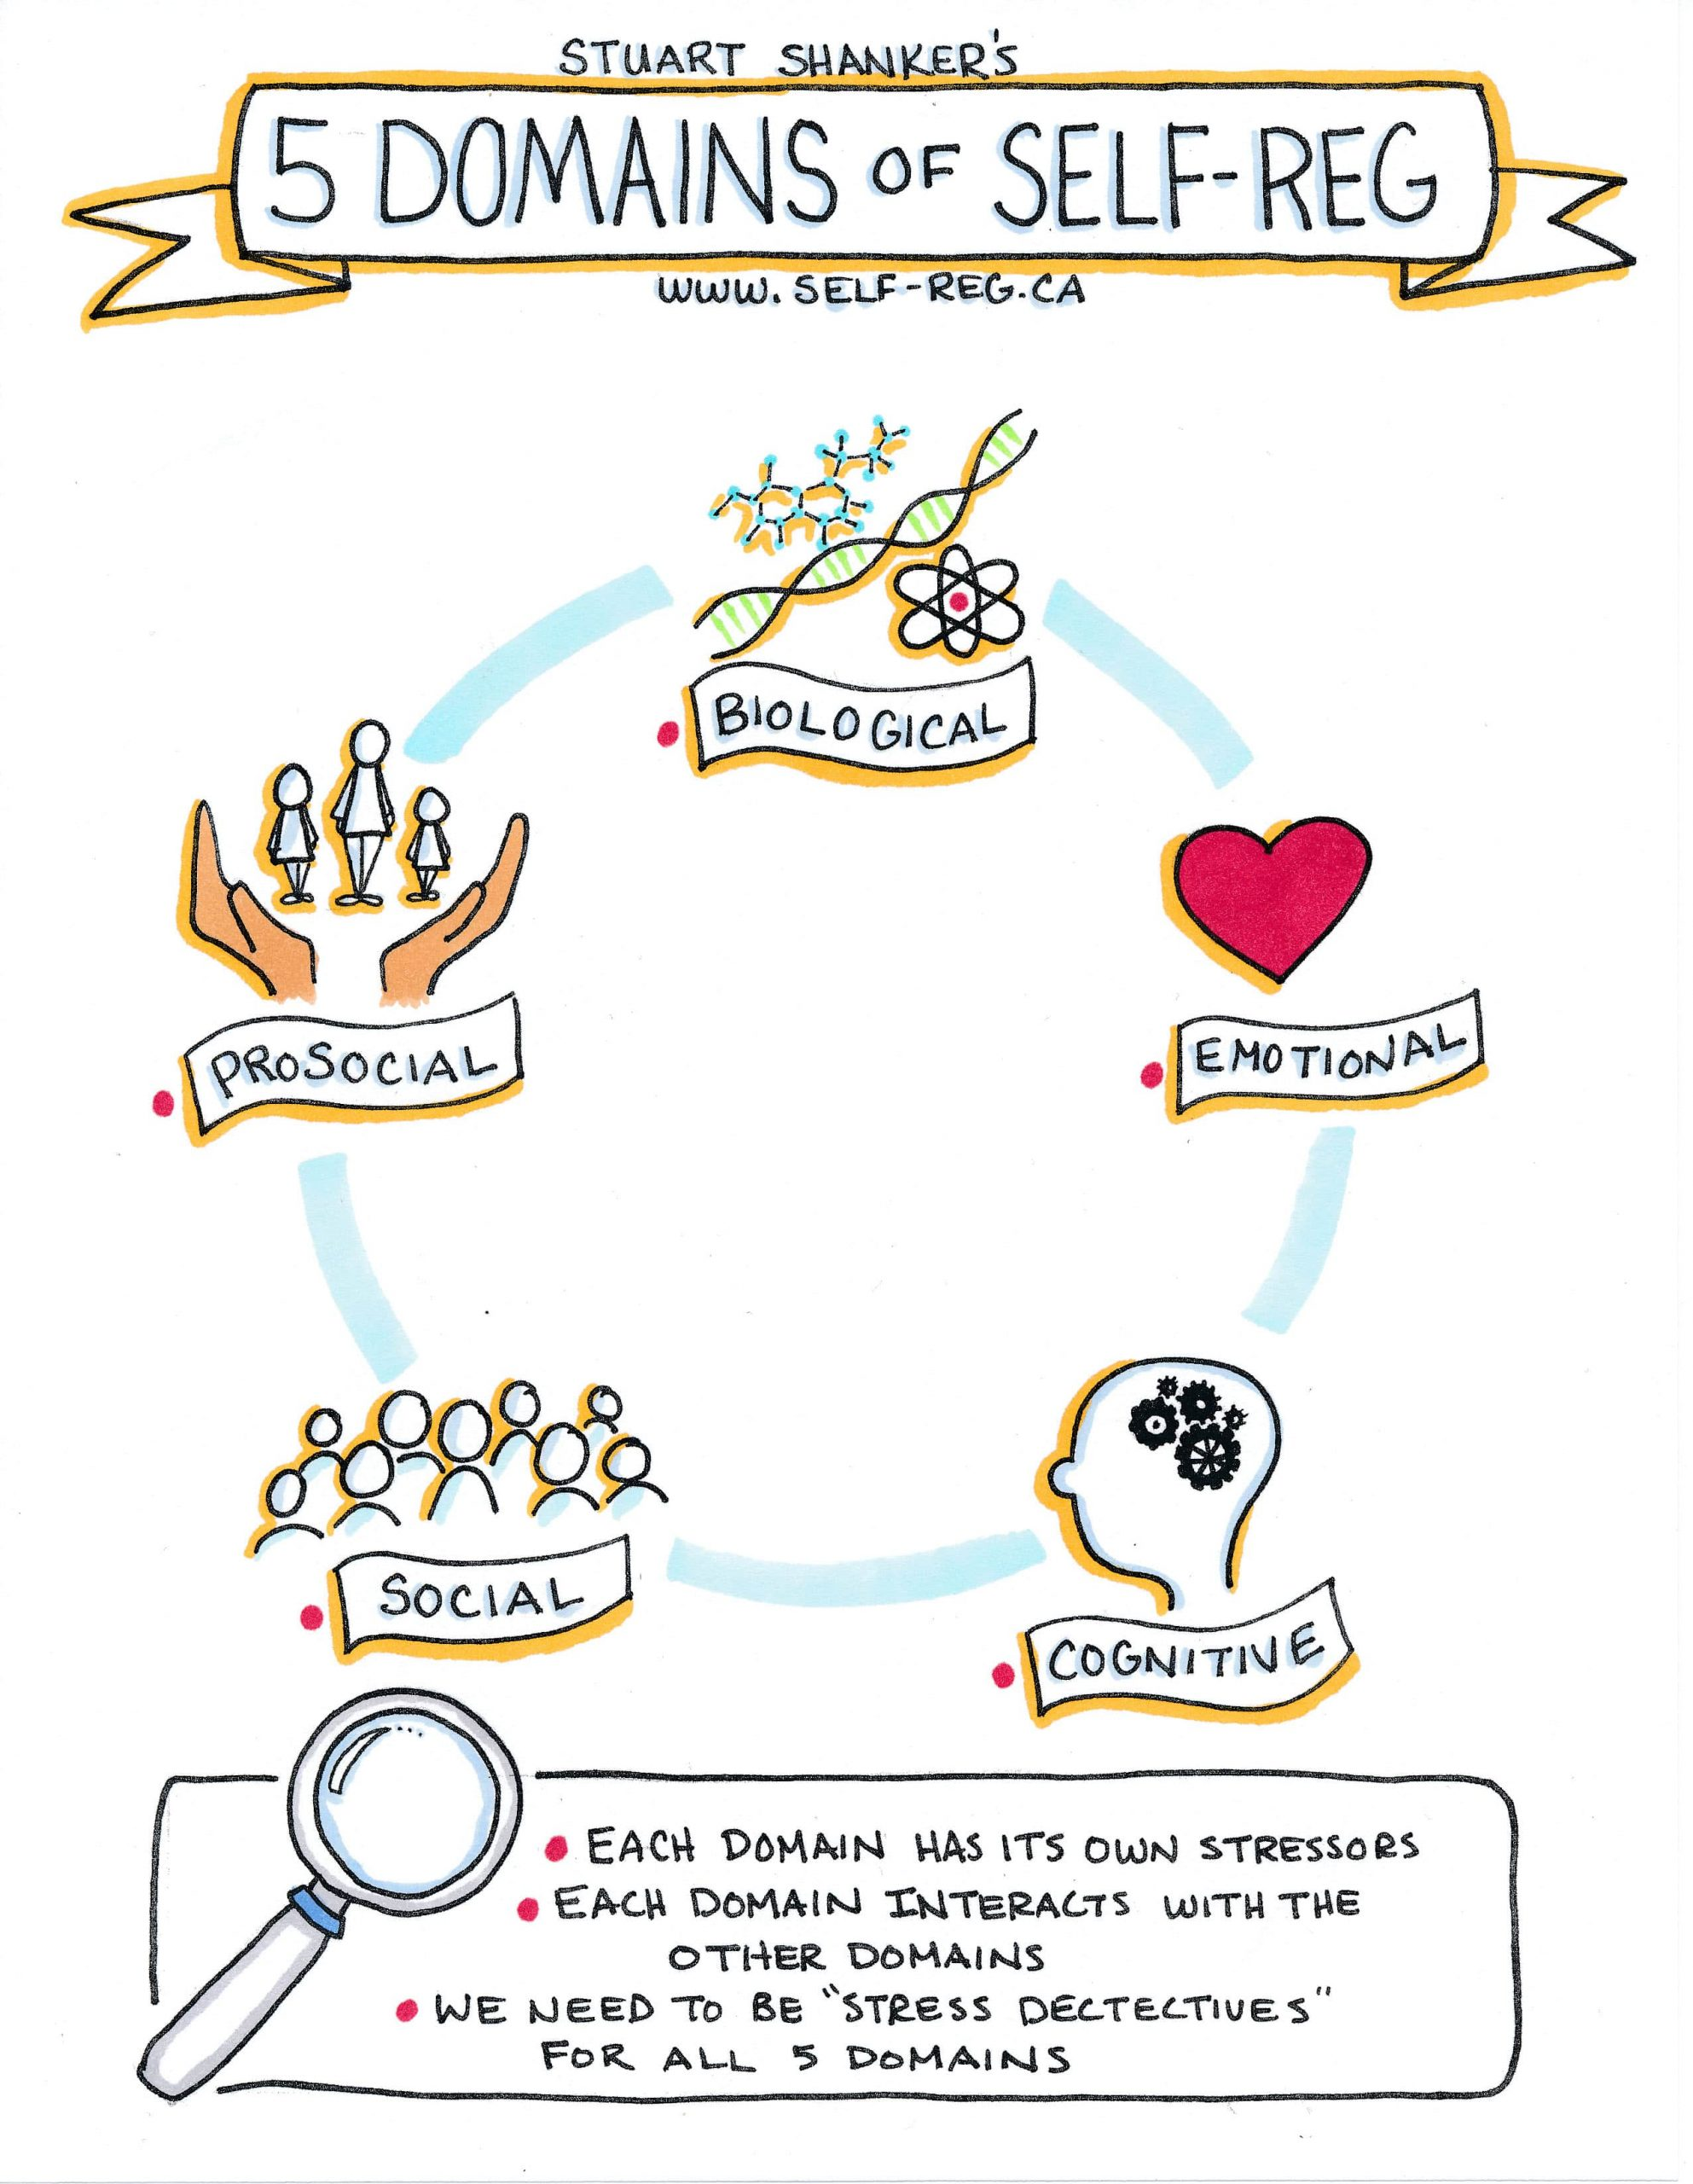 The 5 Domains of Self-Reg